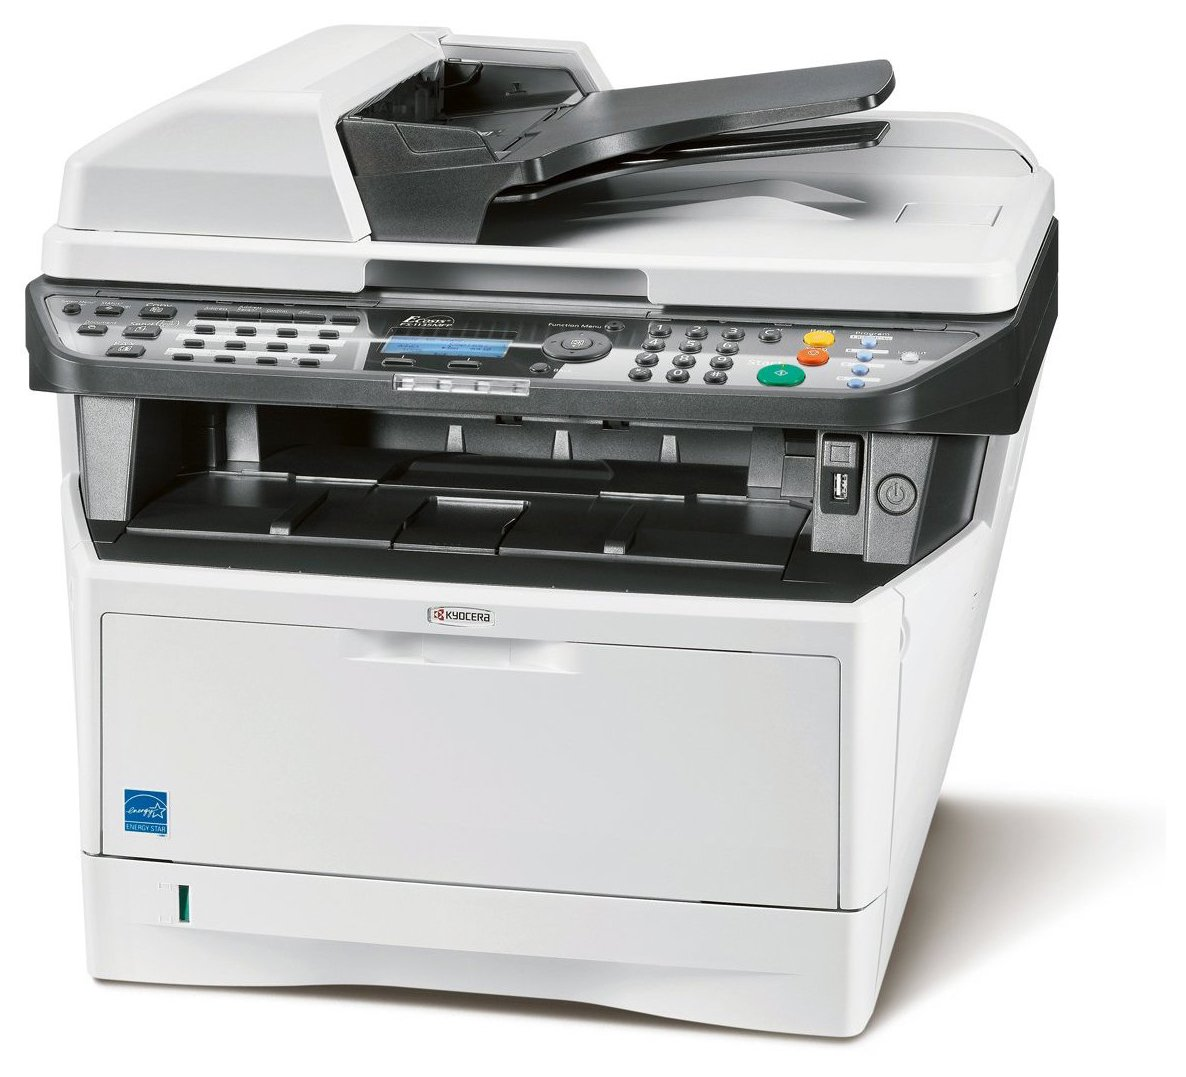 Amazon.com: Kyocera 1102MK2US0 ECOSYS FS-1035MFP/DP Black & White  Multifunctional Printer; Fast output speed of 37 pages per minute; Standard  print, copy, ...